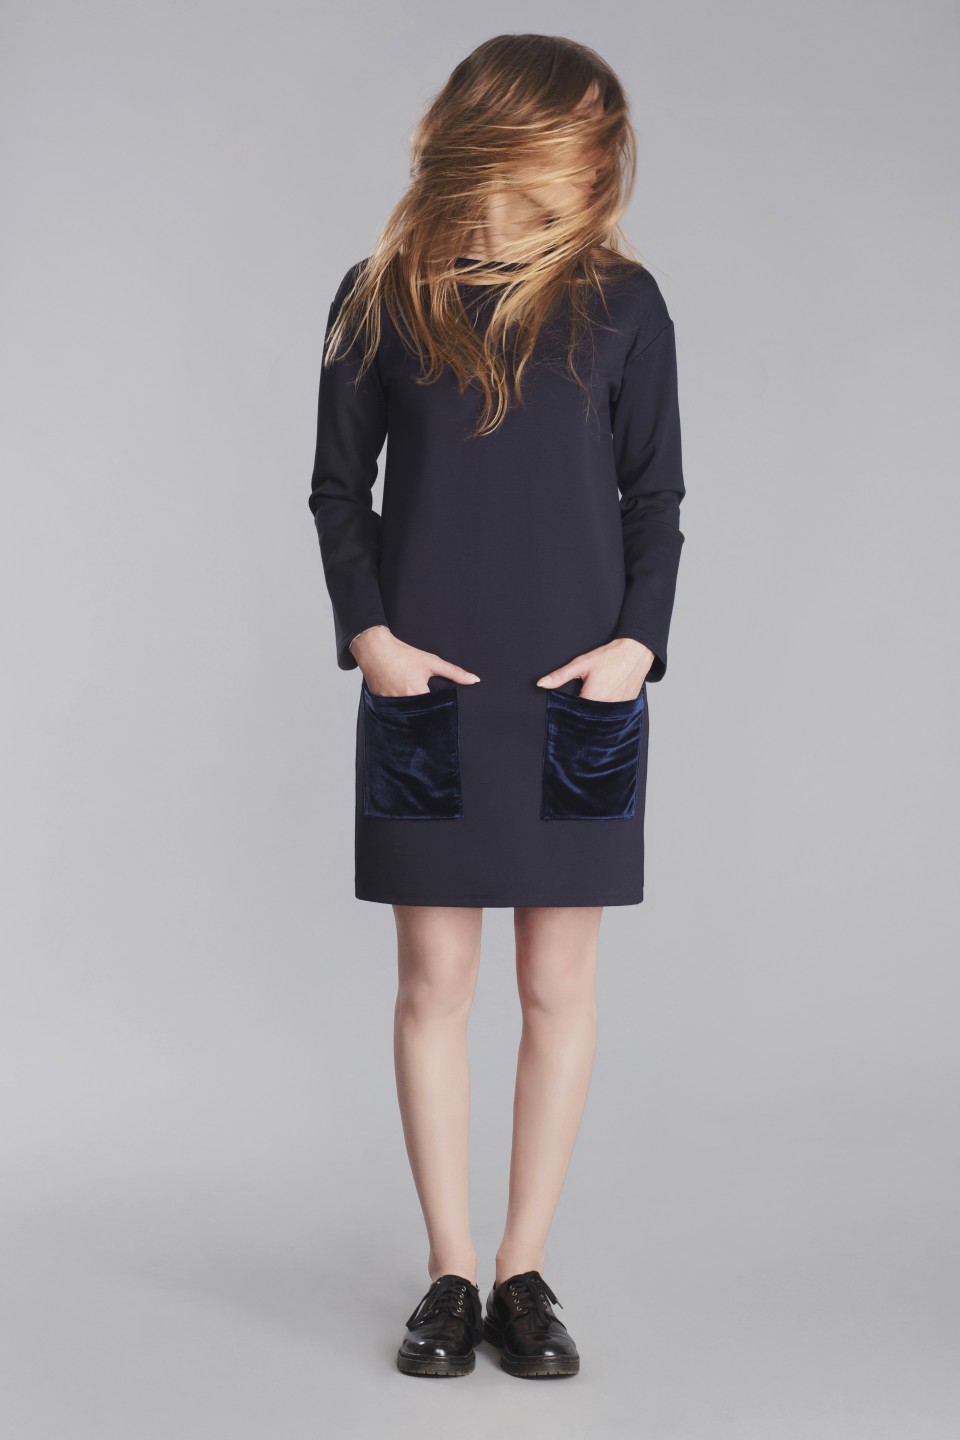 Straight navy dress with pockets